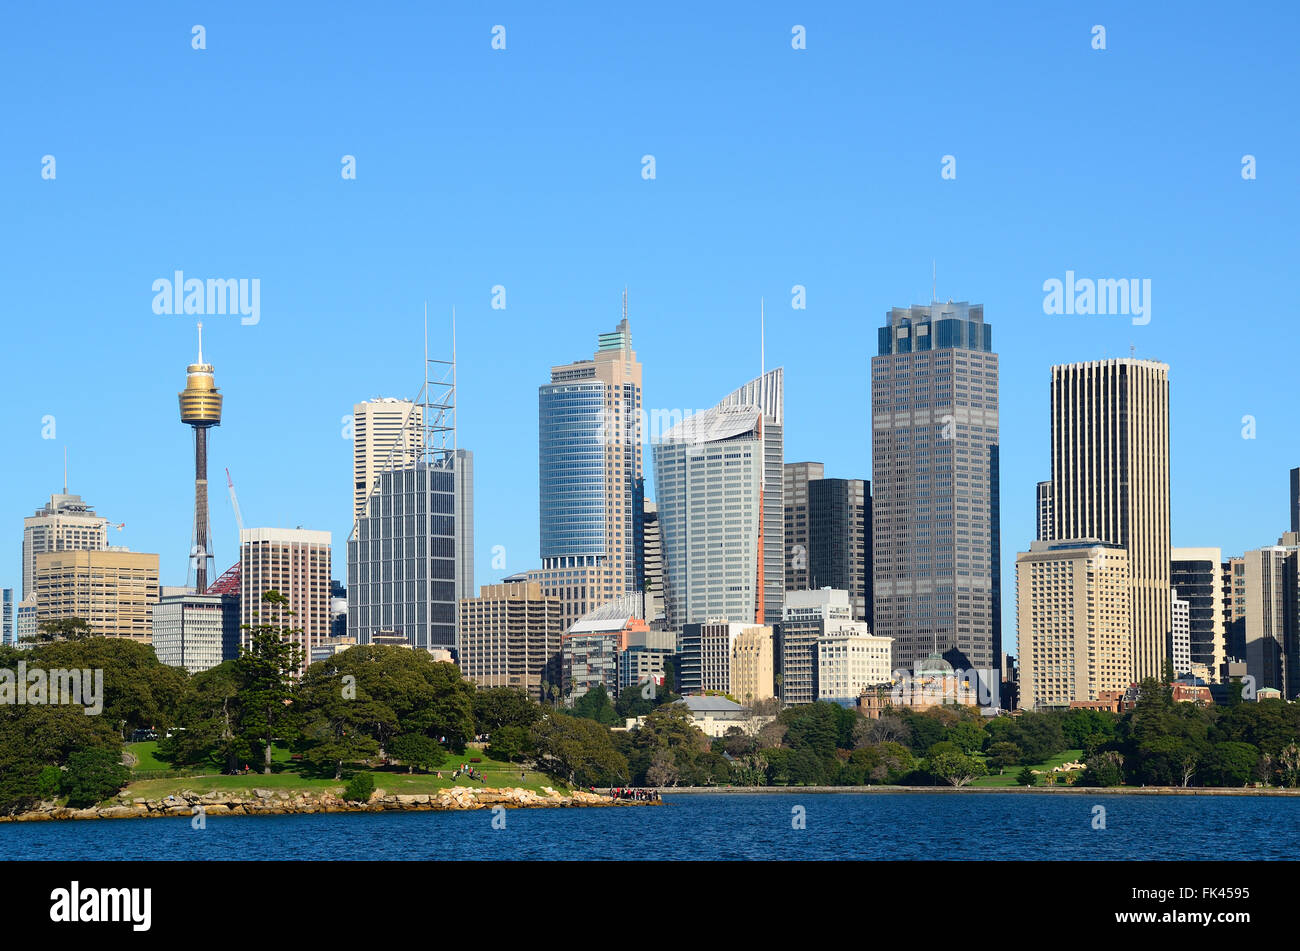 View from water on the sydney cbd with sydney tower and skyscrapers and royal botanic garden with tourists Stock Photo